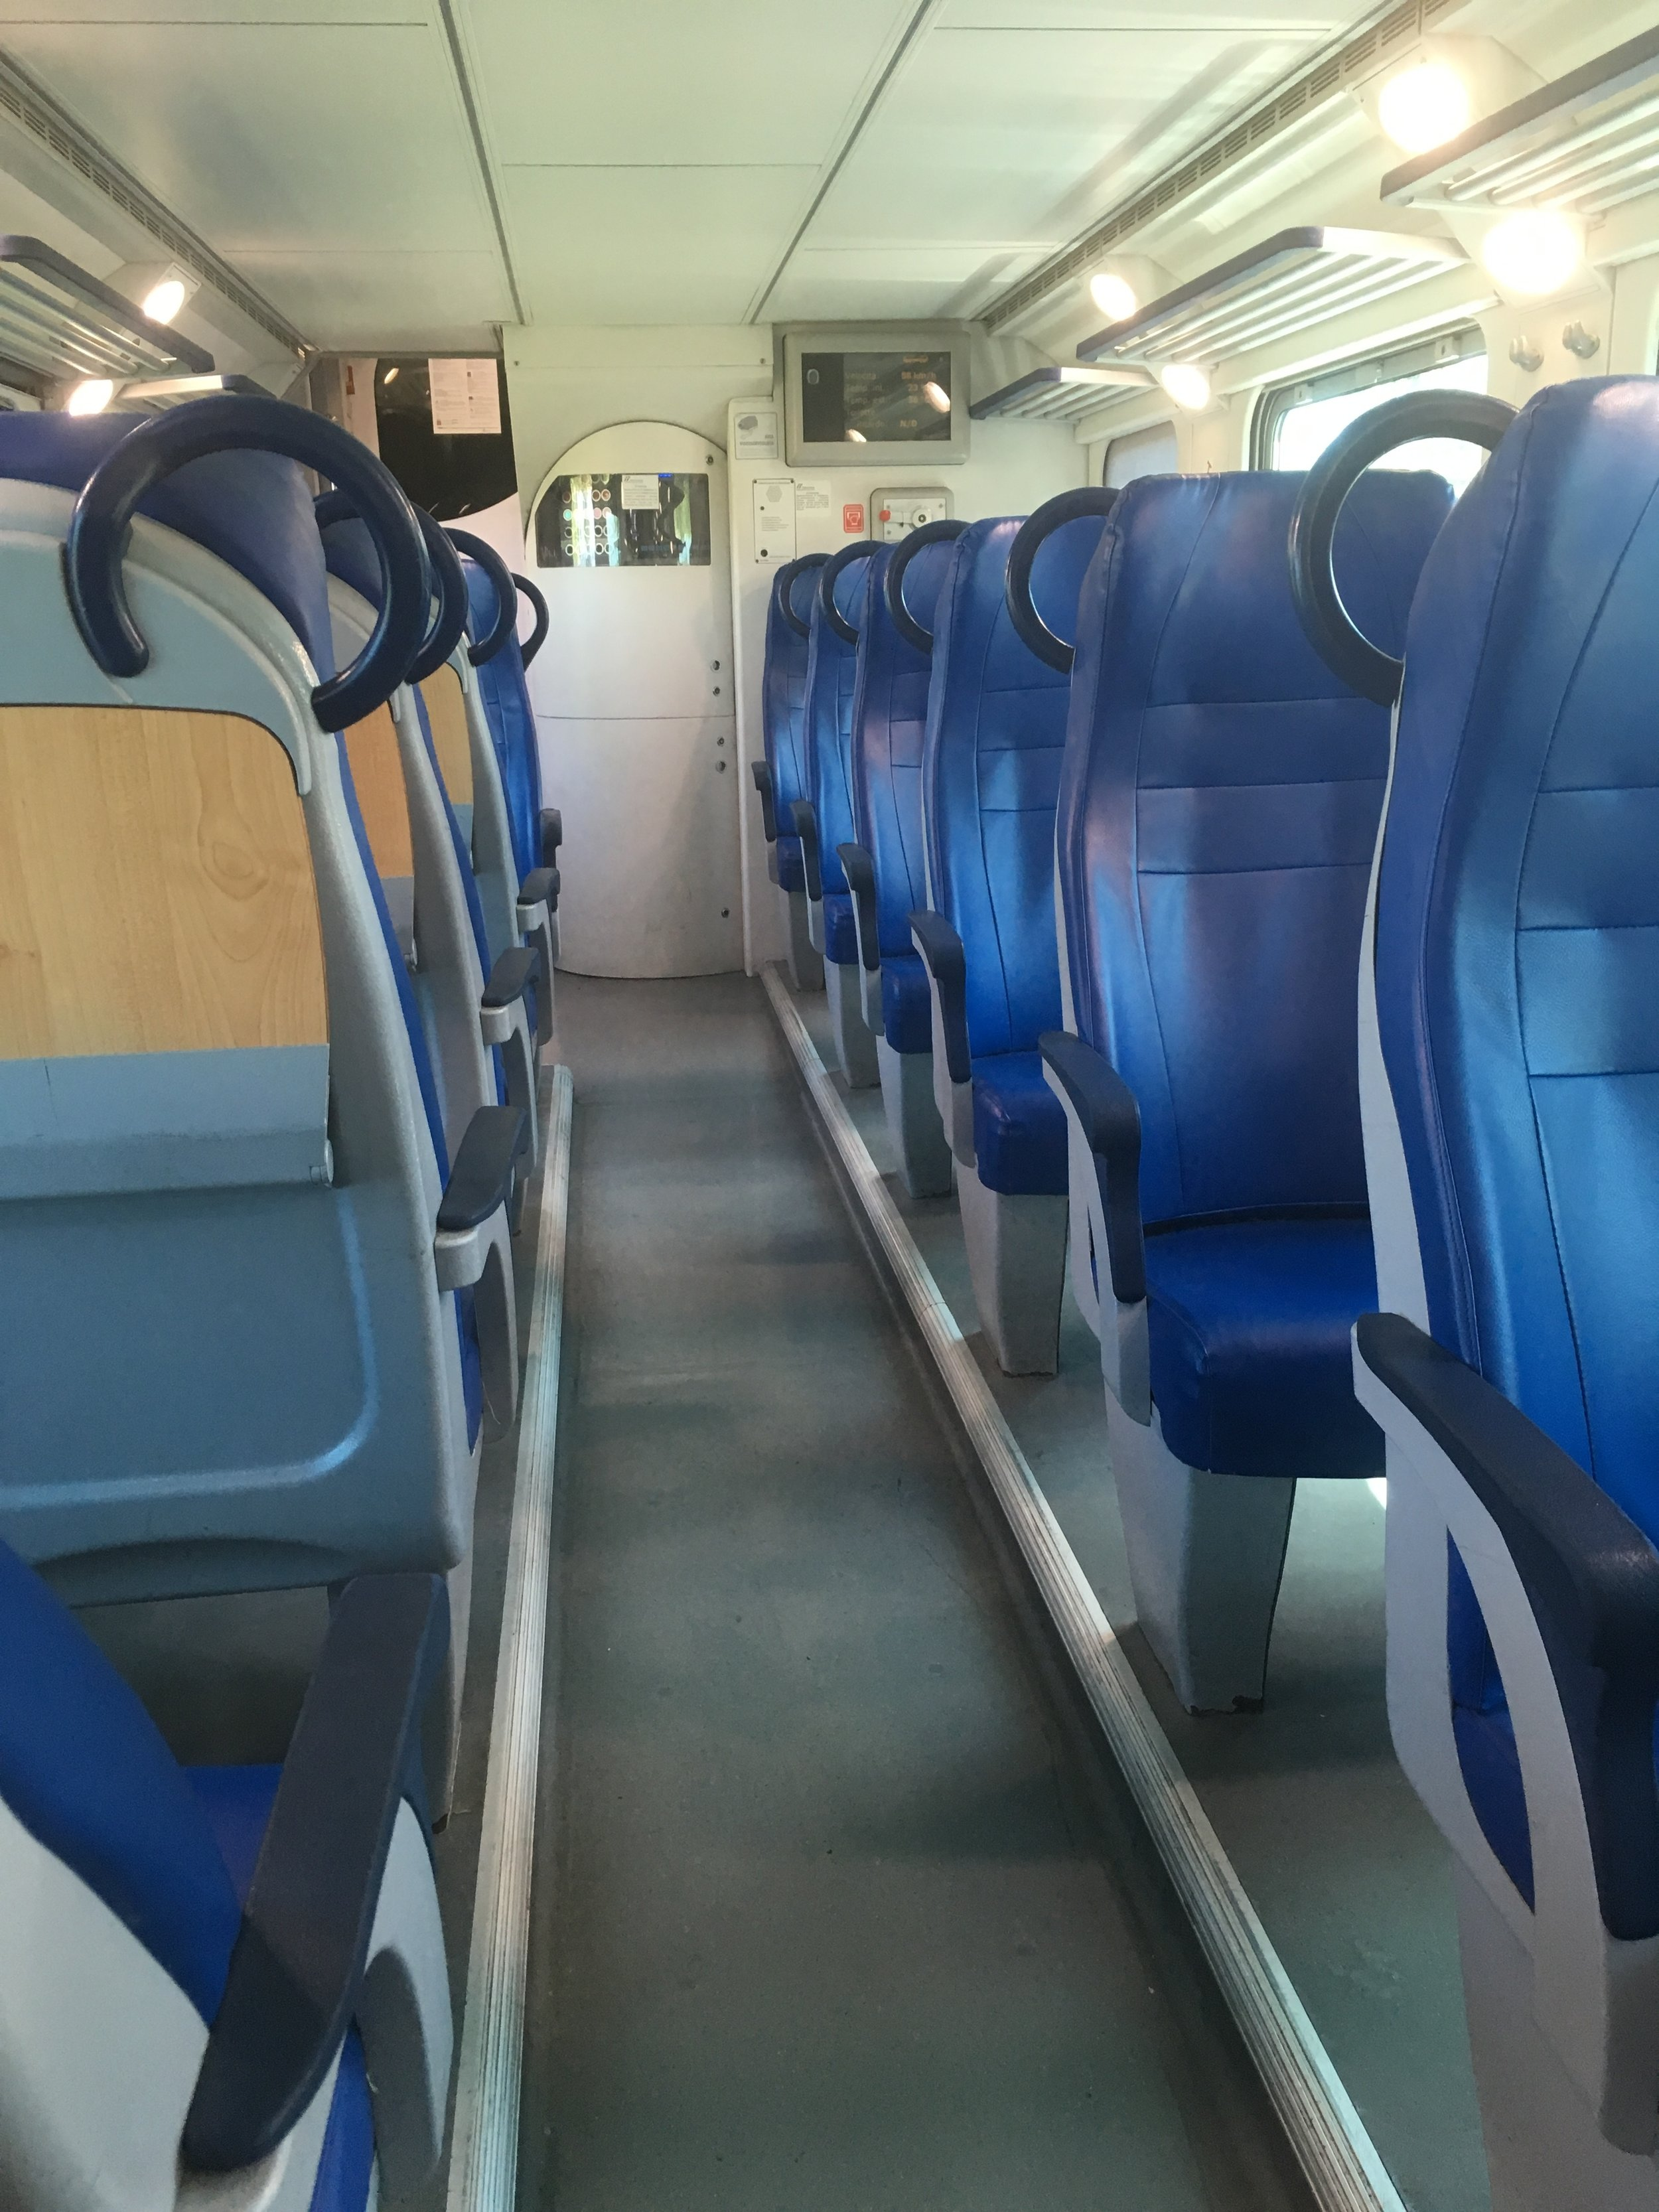 The inside of the train.